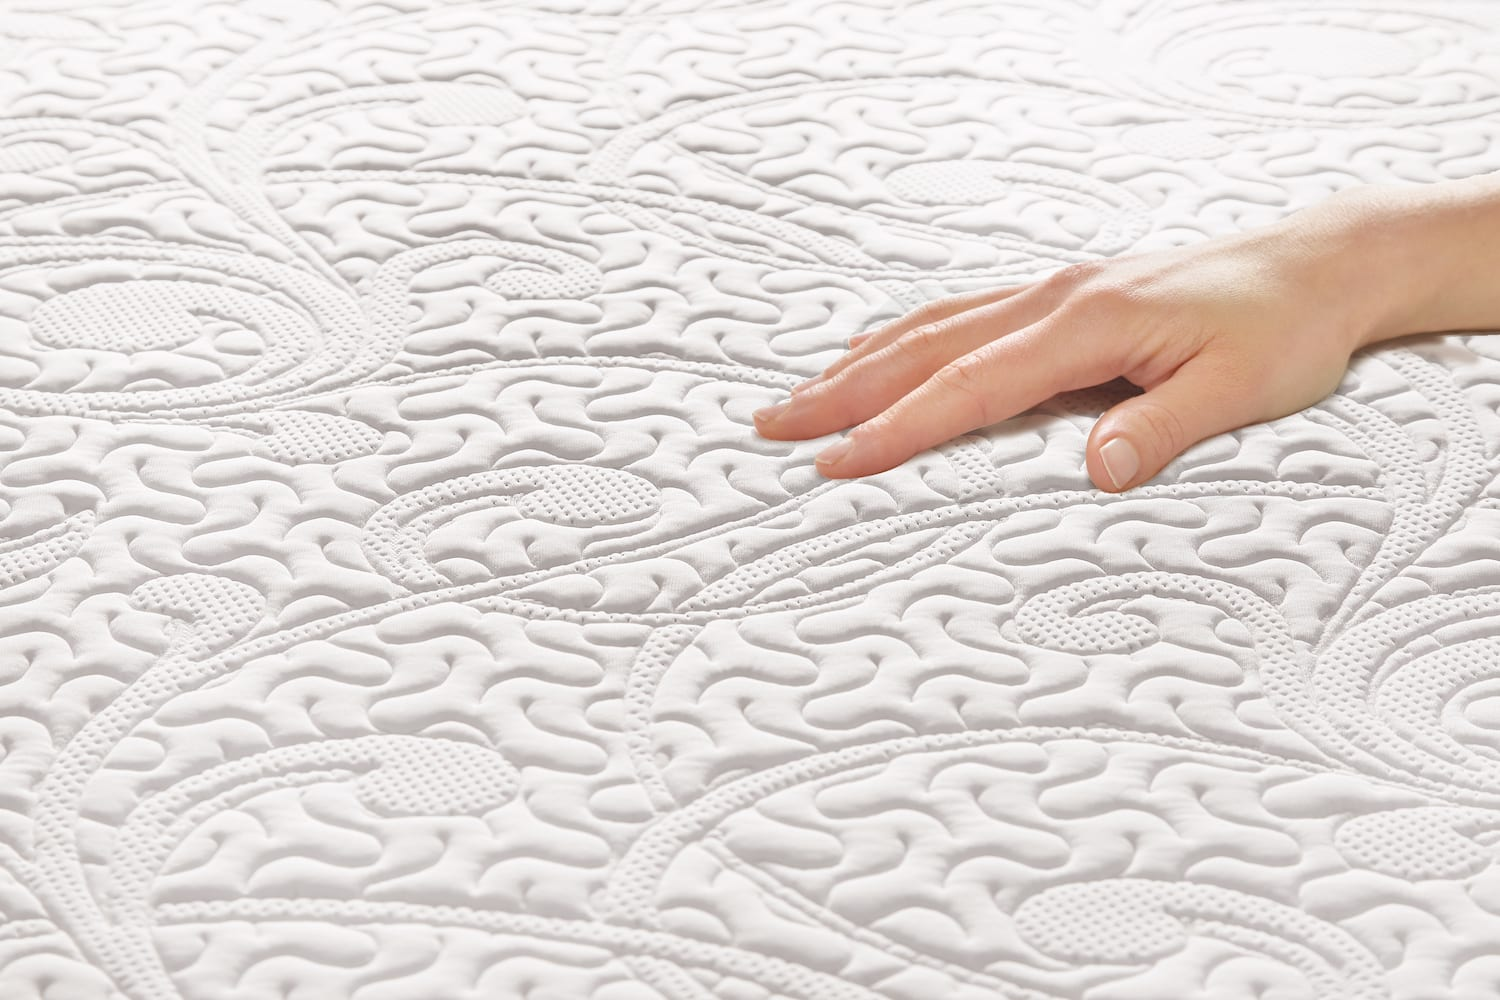 Sunds Textiles – specialists in stretch mattress ticking and